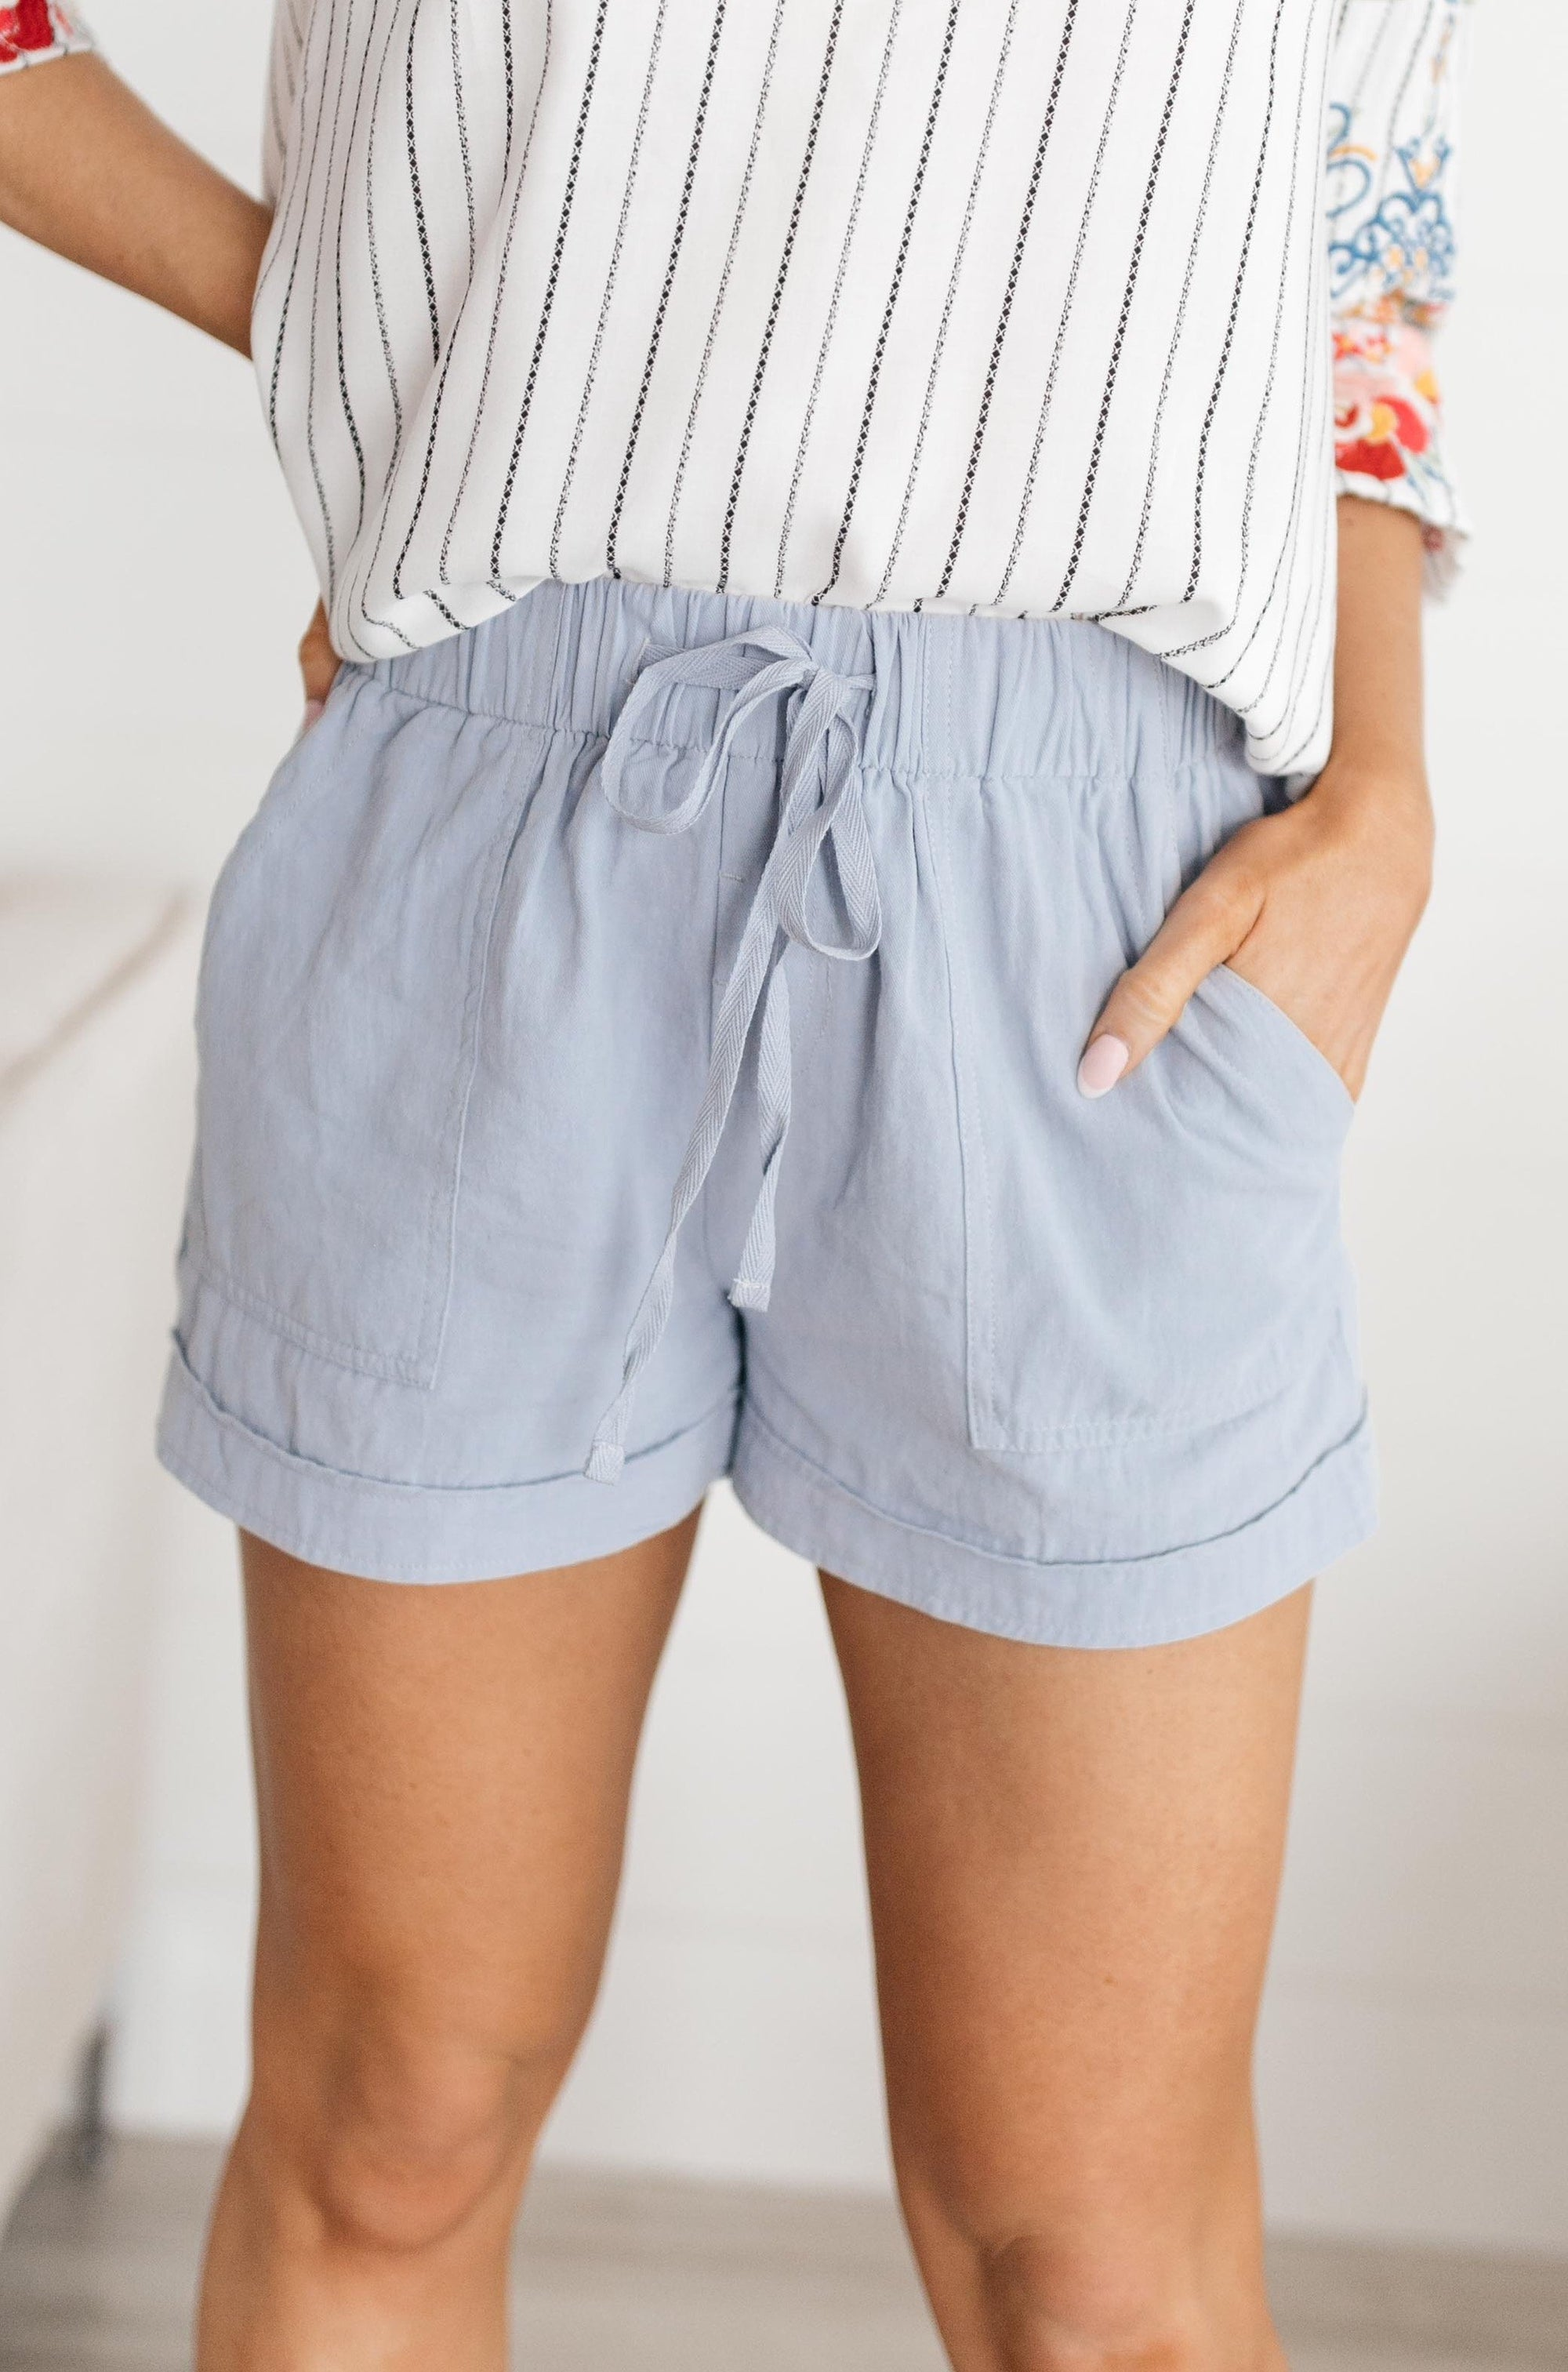 Lightweight and Linen Shorts in Baby Blue-[option4]-[option5]-[option6]-[option7]-[option8]-Womens-Clothing-Shop